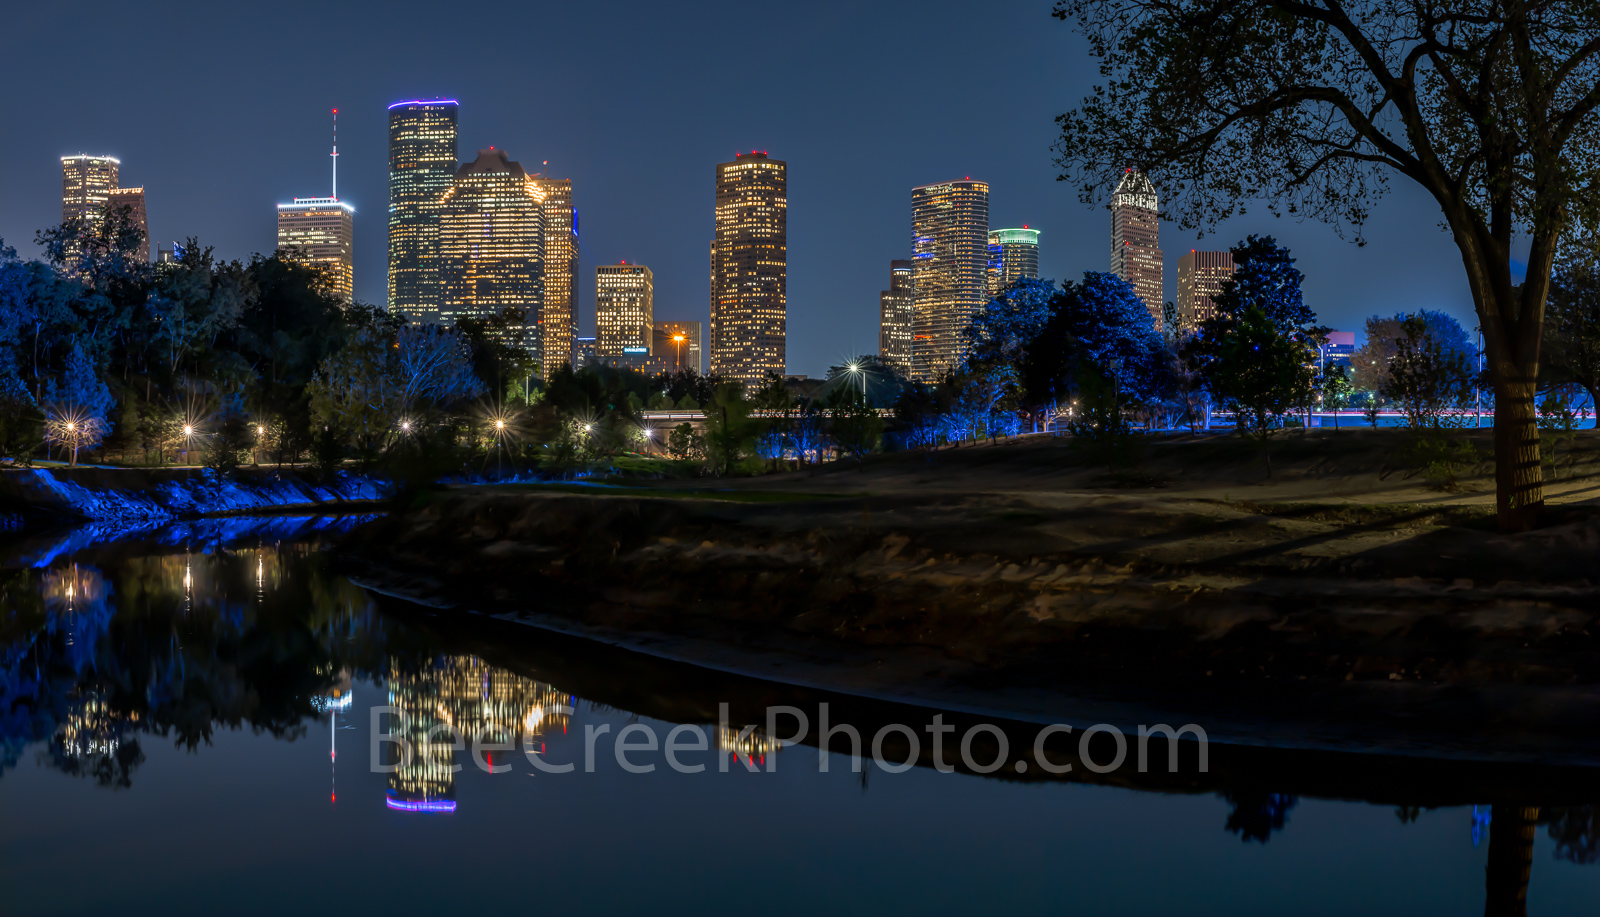 Houston skyline, cityscape, hike and bike trail, Police Memorial, dark, downtown, city, Buffalo Bayou, reflection, moon lights, faint blue glow, trees, tallest buildings, southwestern, US, Texas, pano, photo